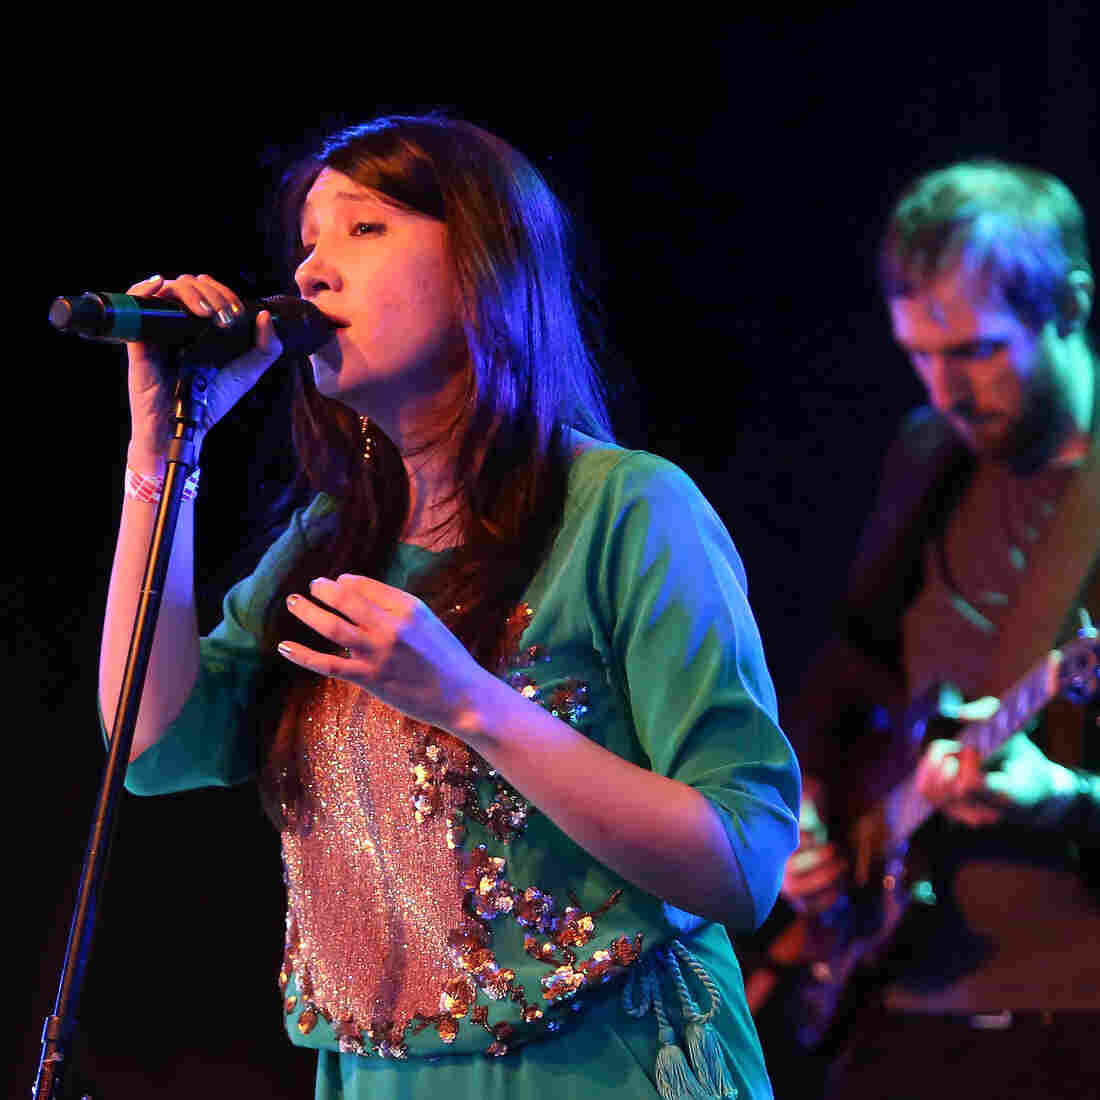 Zeb Bangash performs with her band Sandaraa  at Le Poisson Rouge in New York City last year. (Left to right: Michael Winograd, Bangash, Yoshi Fruchter, Eylem Basaldi.)